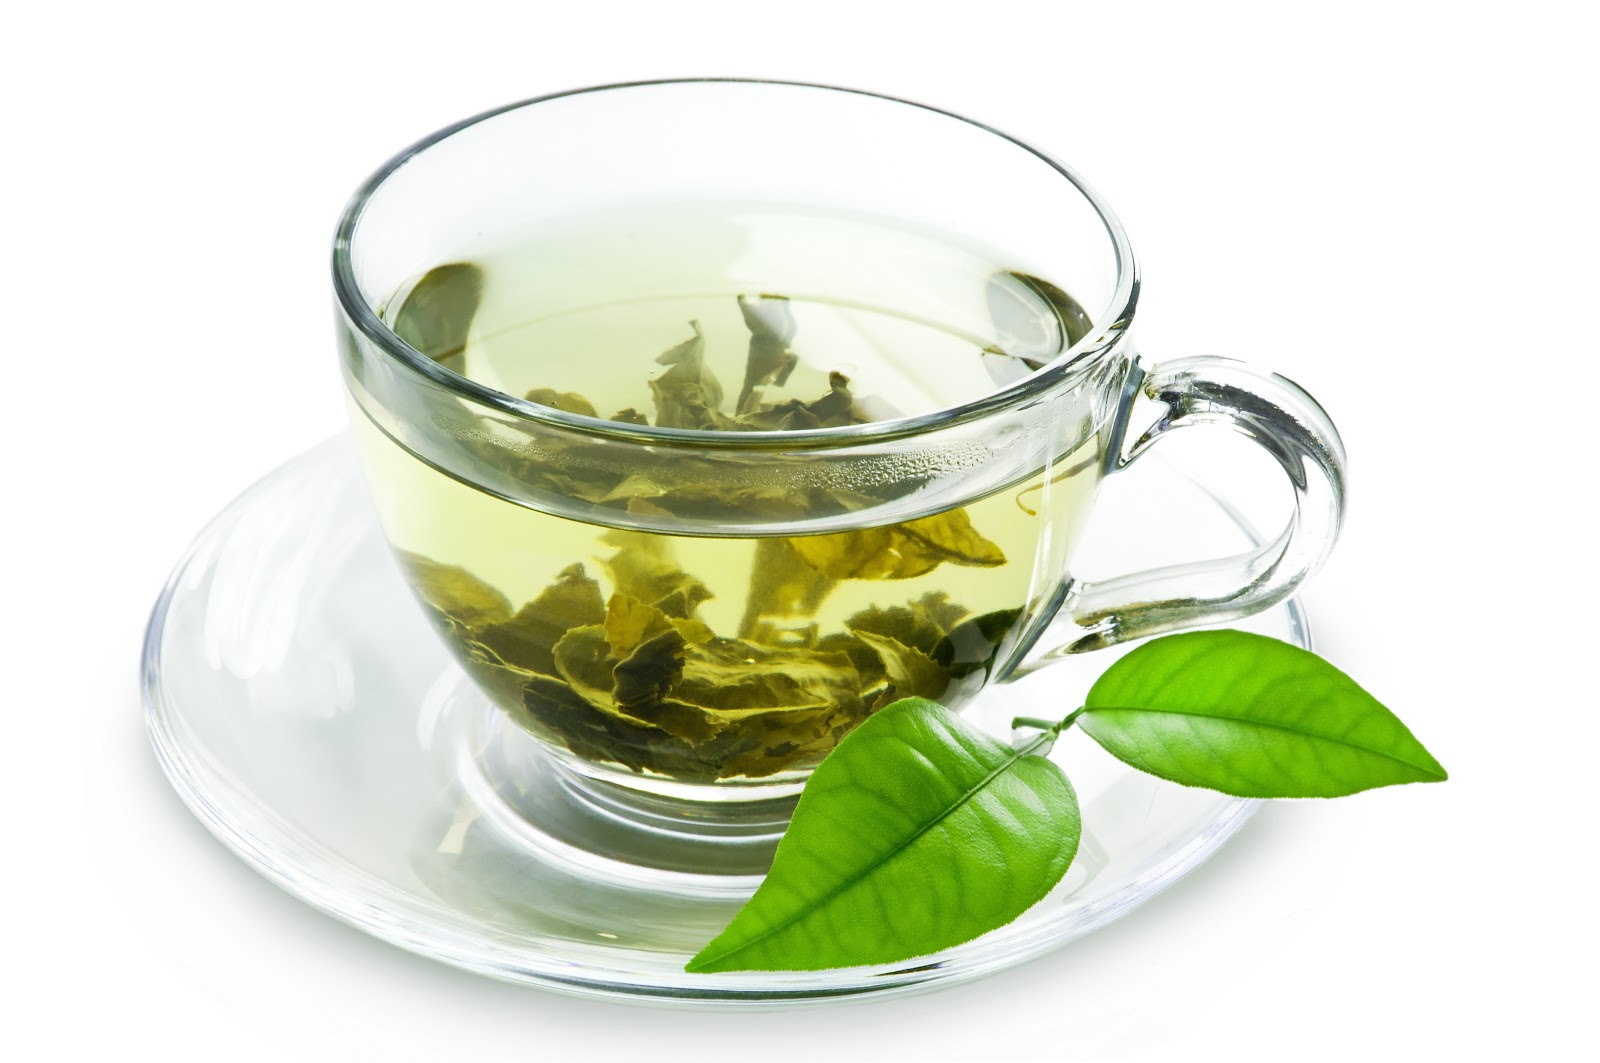 Another thing that is great is green tea, green tea is a detox and clears your body of all toxins, but the main thing is that its a metabolism booster, it speeds up metabolism ane your digestive system